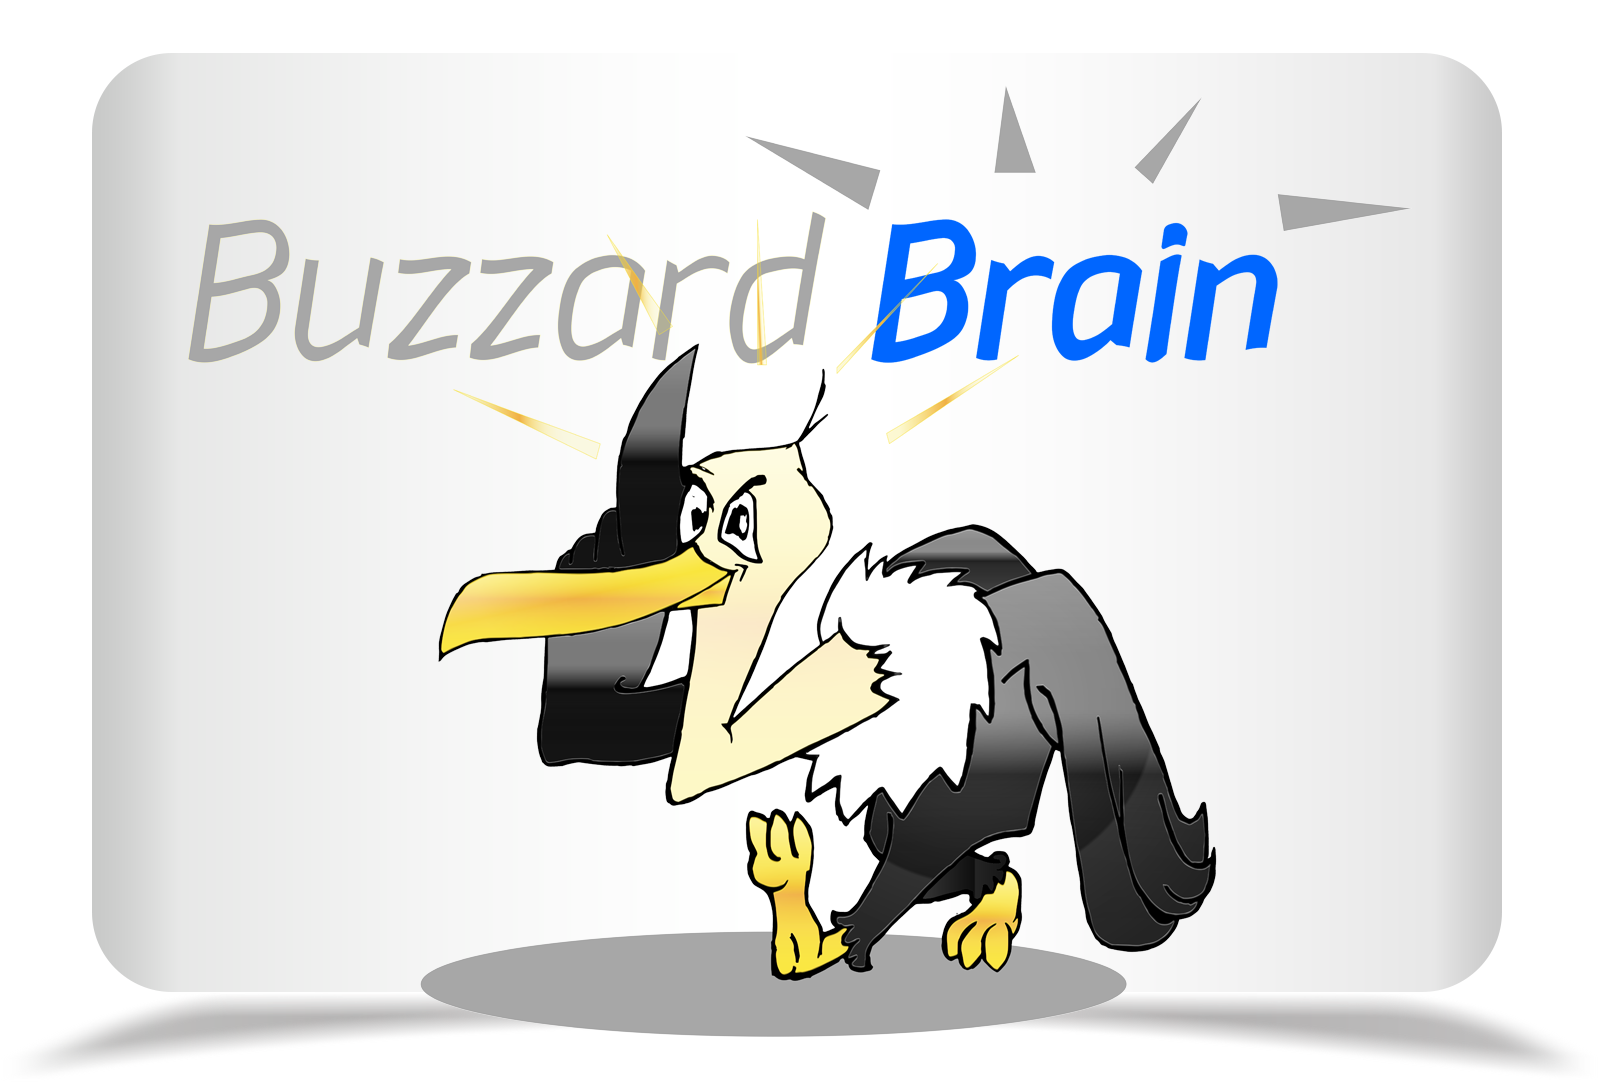 Logo Design by Rozsa Matyas - Entry No. 67 in the Logo Design Contest Buzzard Brain Logo Design.